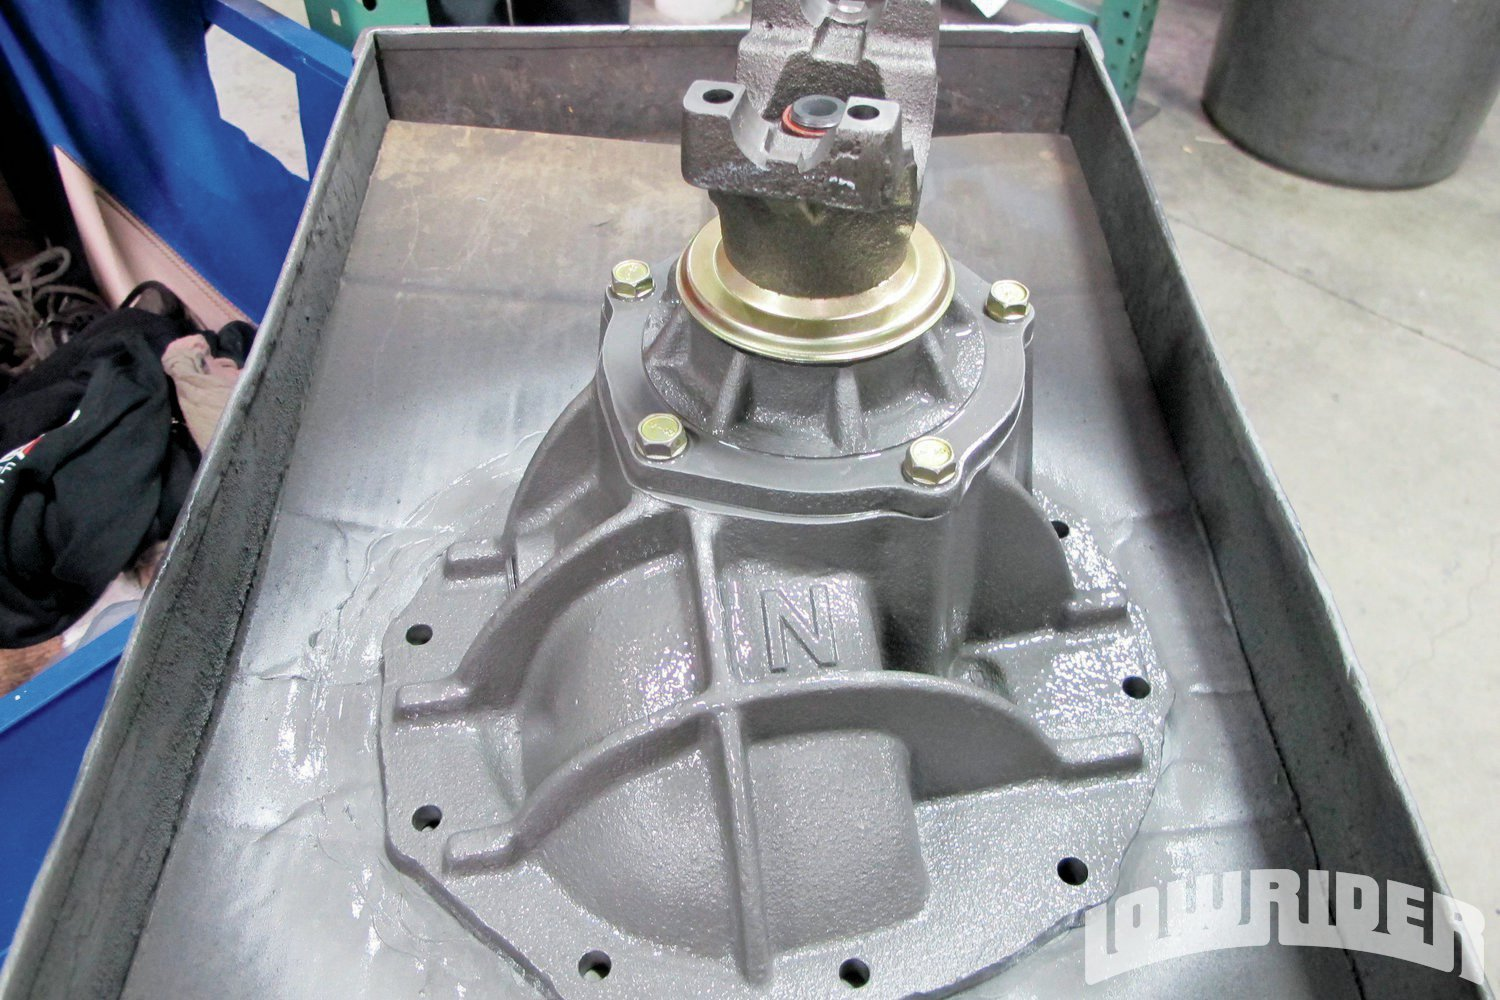 <strong>22</strong>. To make sure that the bare metal did not rust up it was protected with a high heat coating.